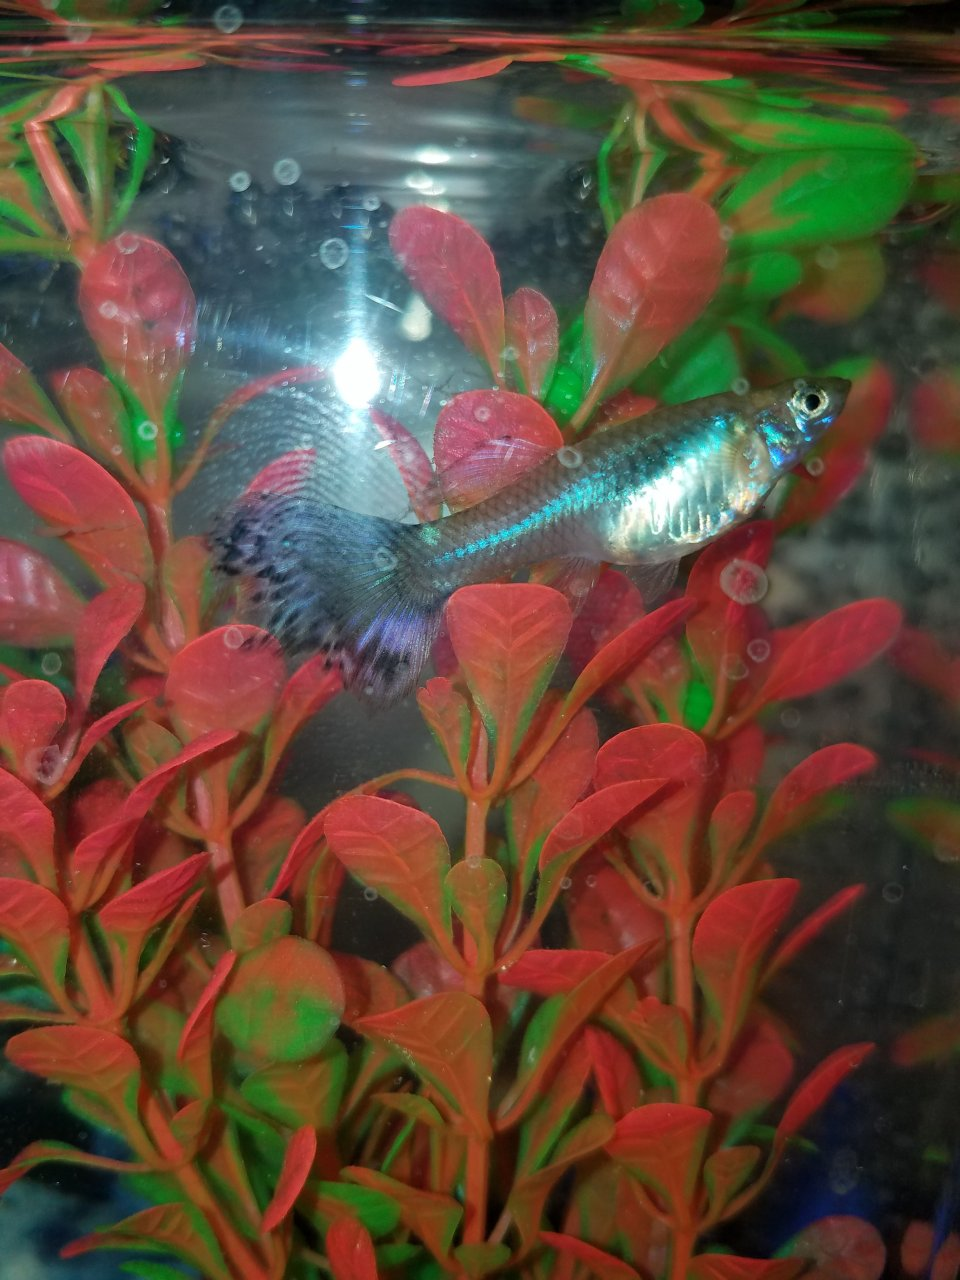 I Cant See My Guppies Gravid Spot... But She Is Fat. | My Aquarium Club